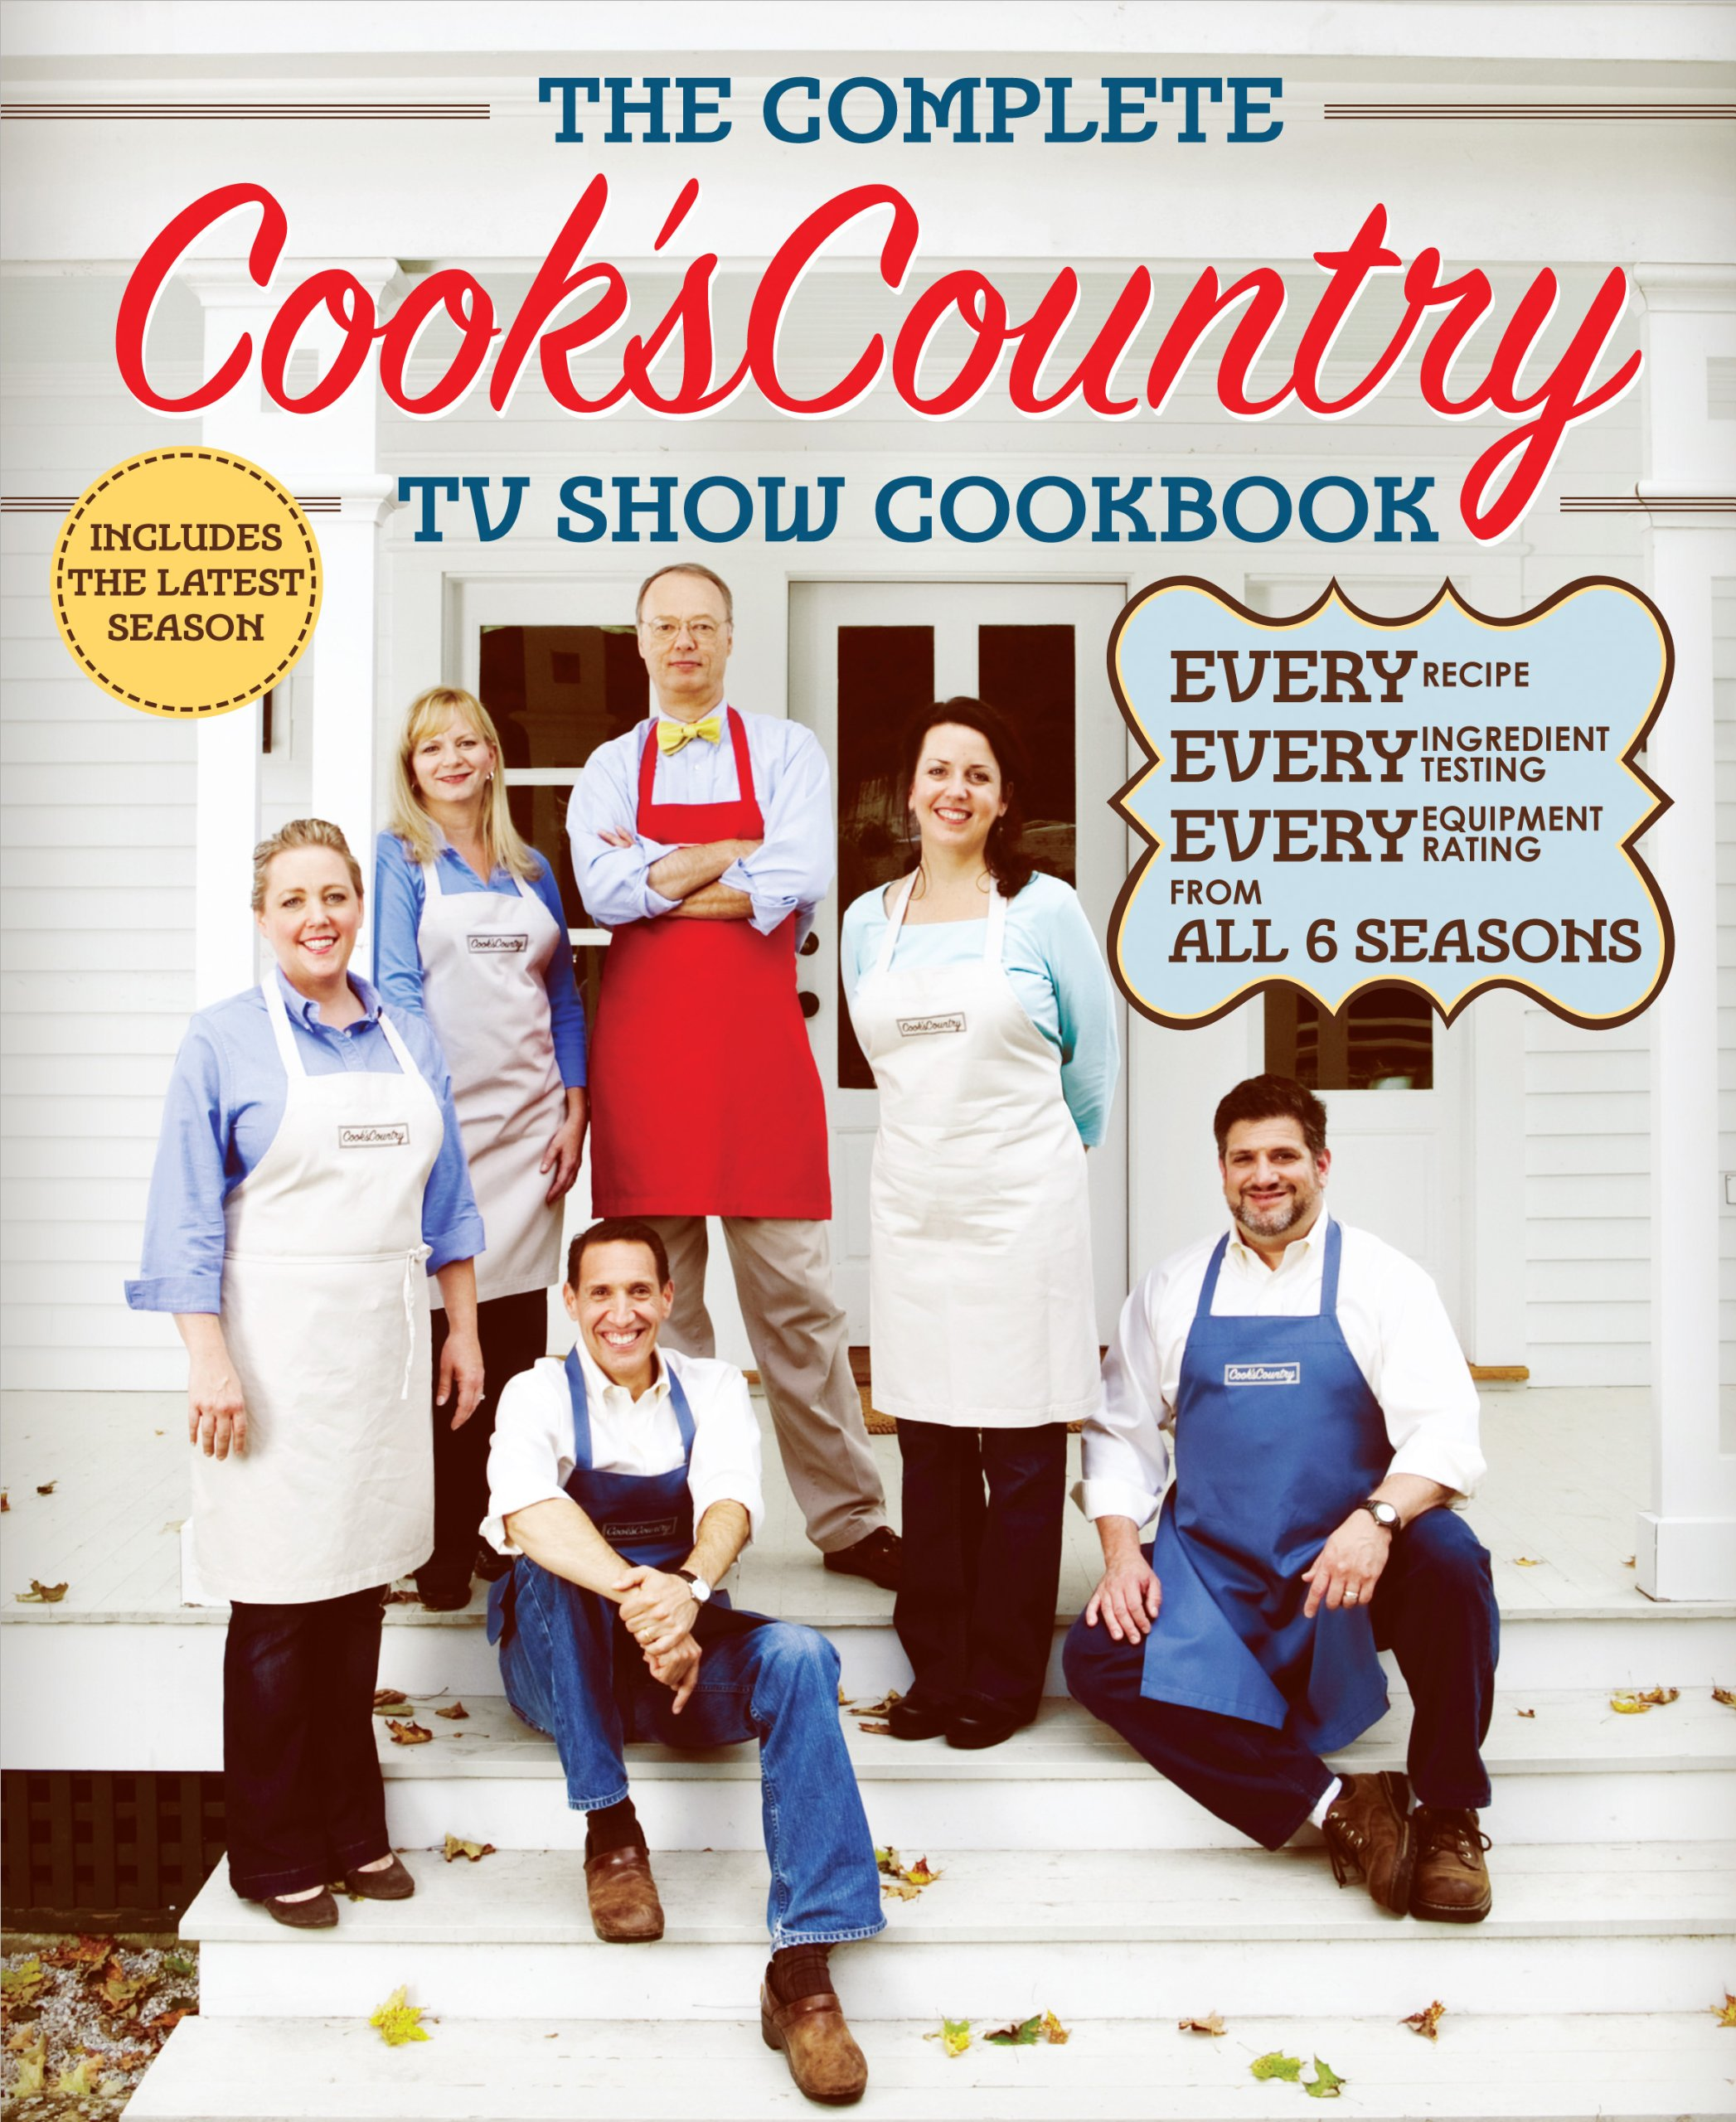 The Complete Cook S Country Tv Show Cookbook Revised Editors At 9781936493531 Com Books